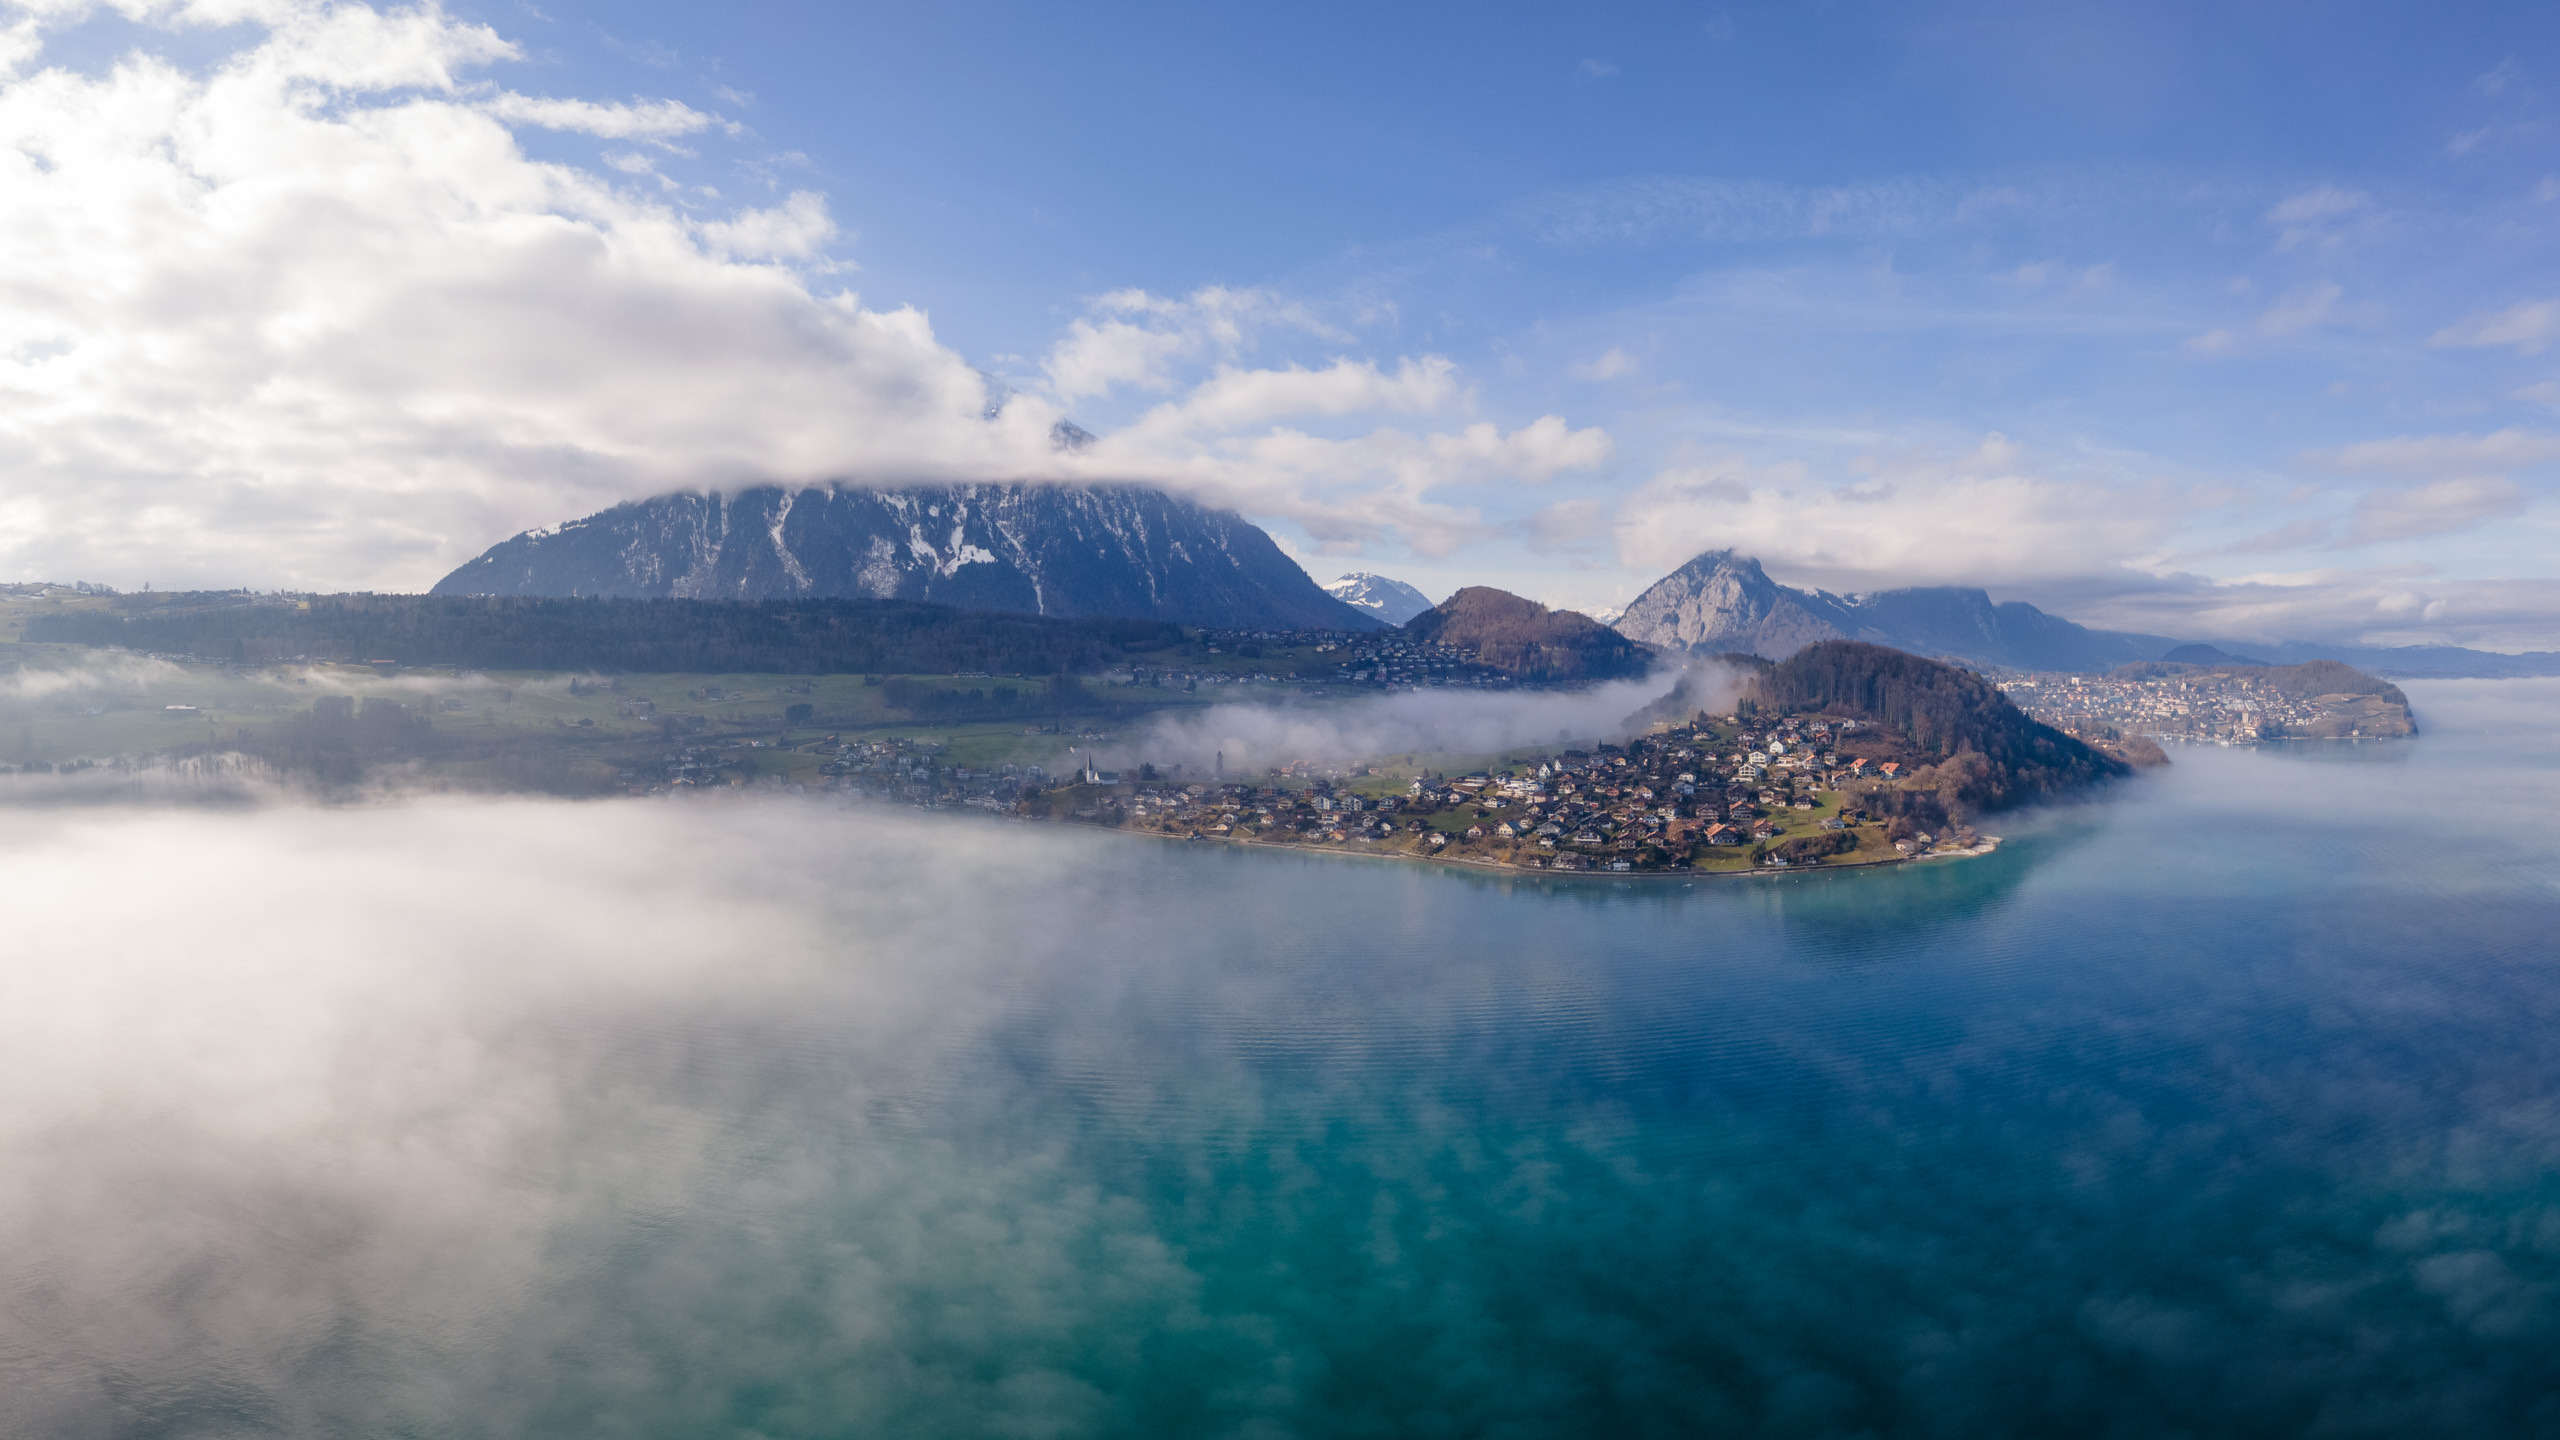 Mist over Faulensee